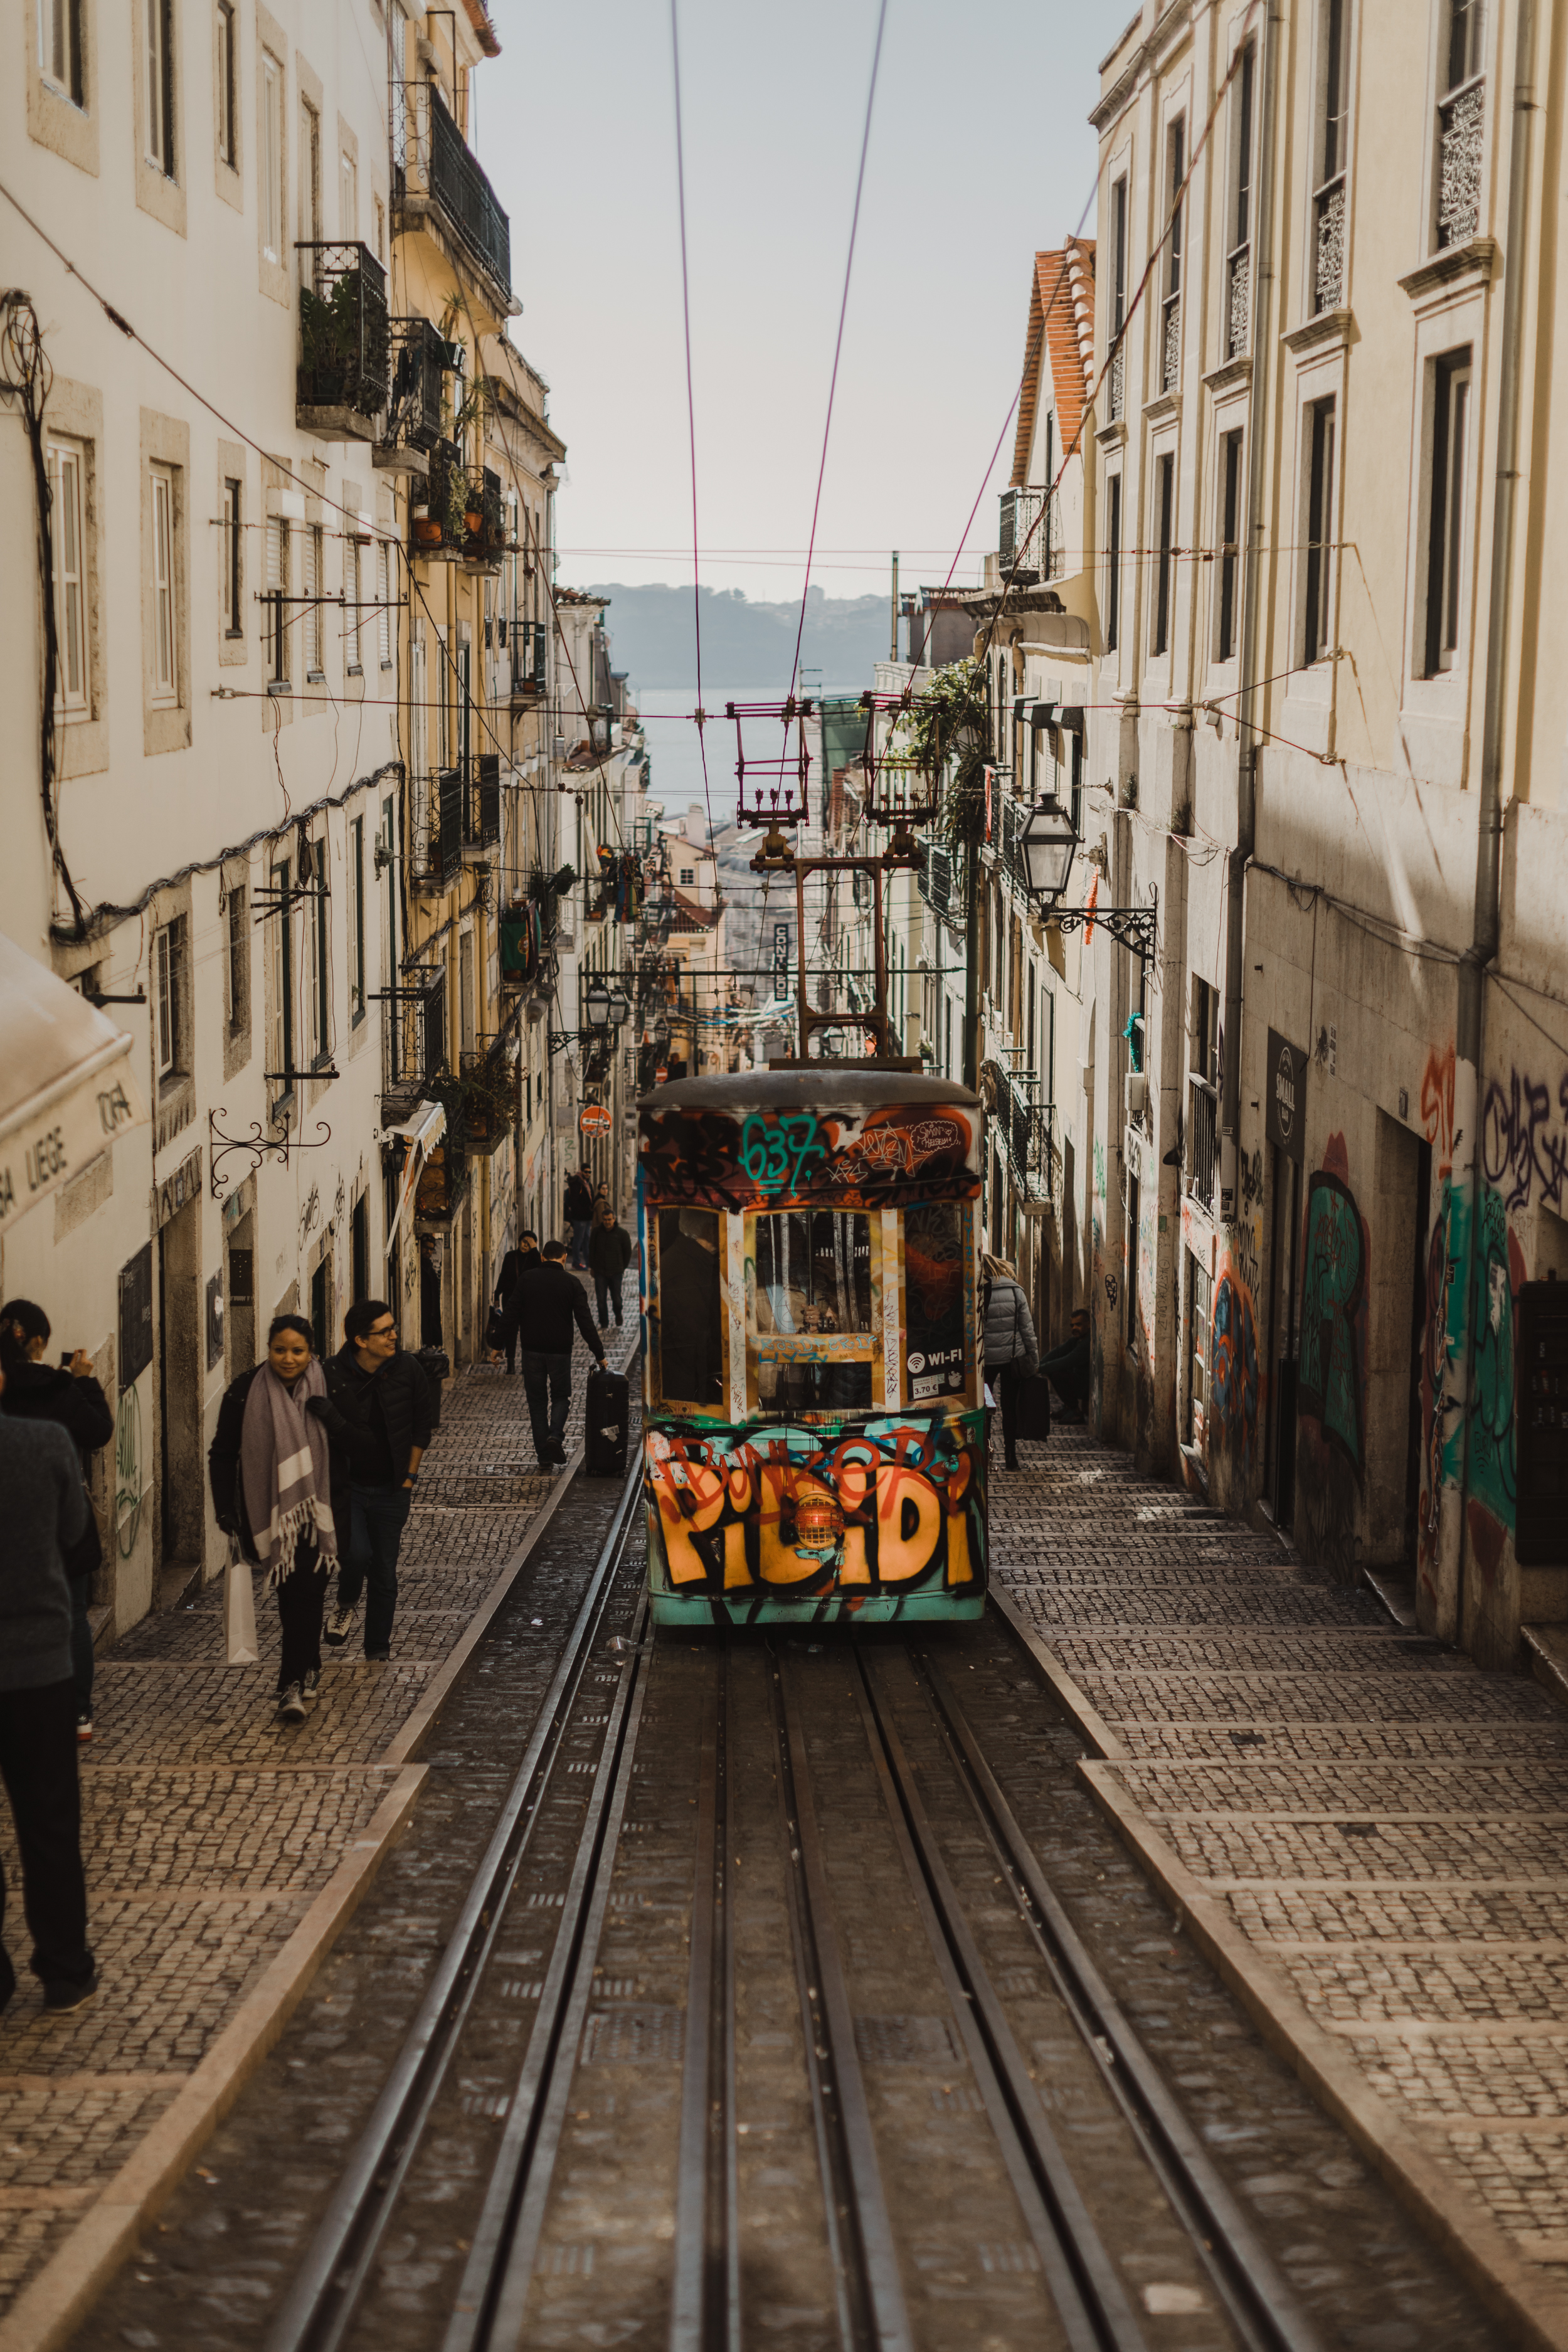 The most photographed street in Lisboa